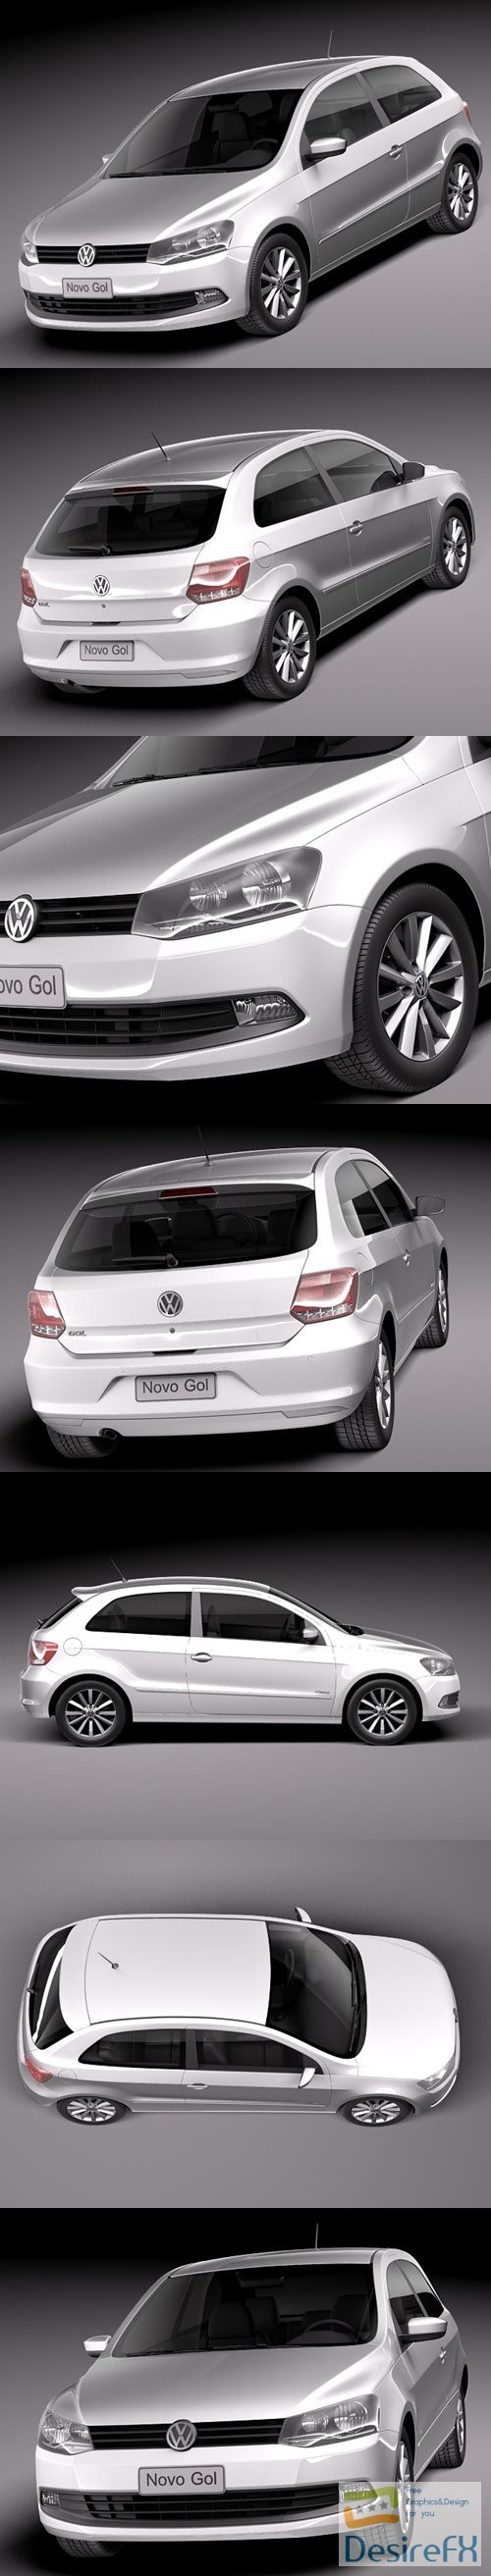 3d-models - Volkswagen Gol 2013 3D Model